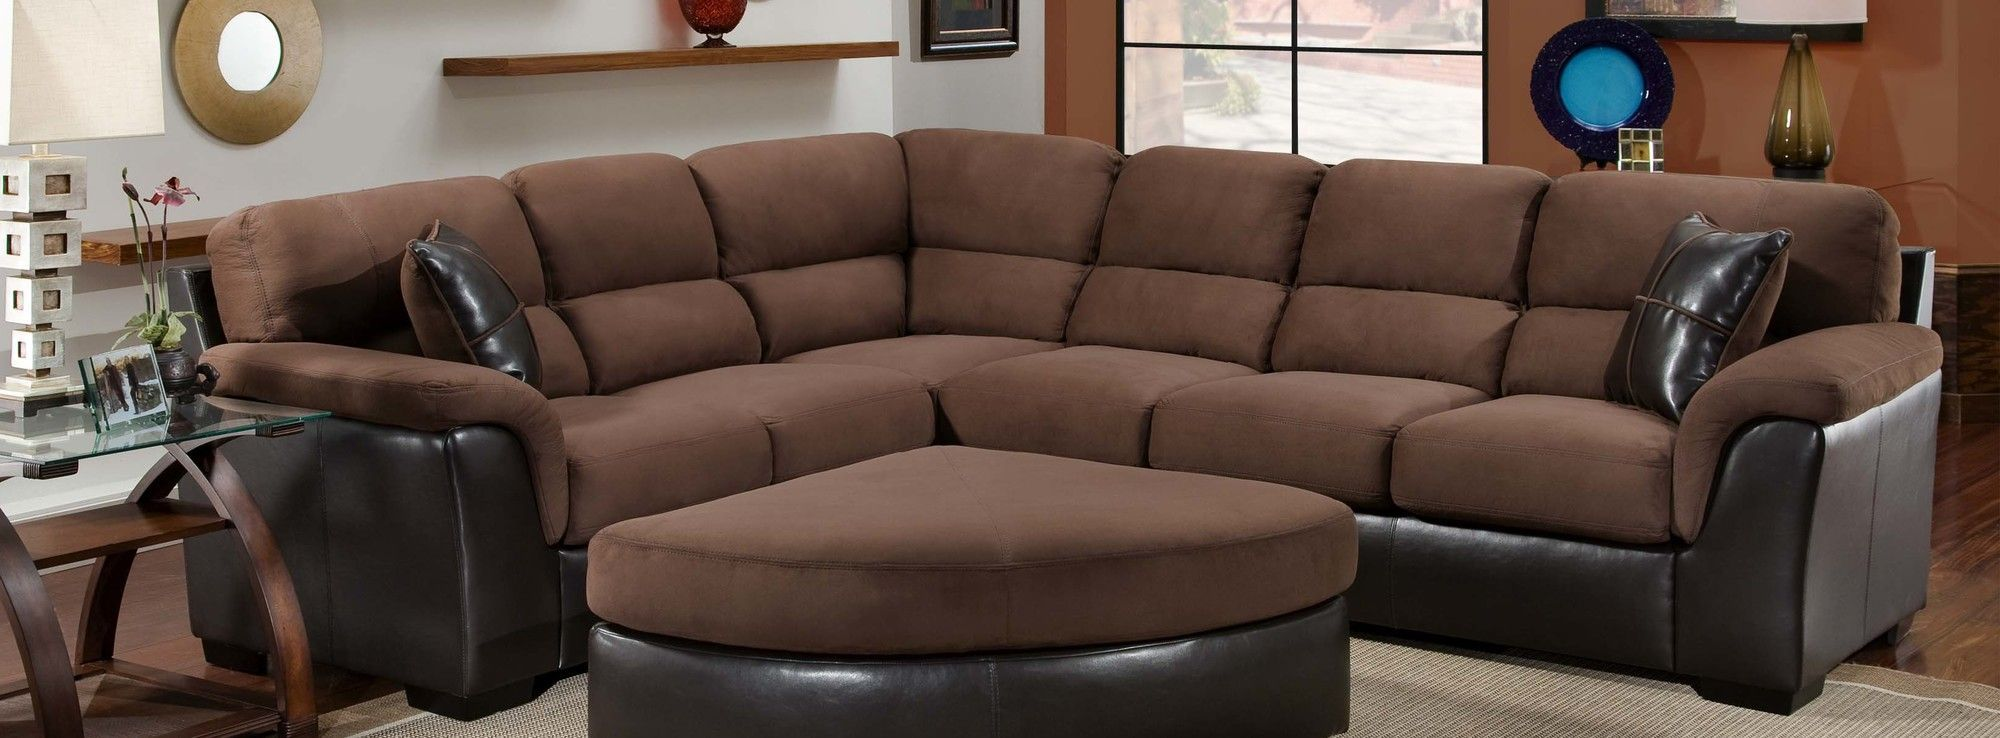 Chelsea Home McLean 2 Piece Sectional Sofa